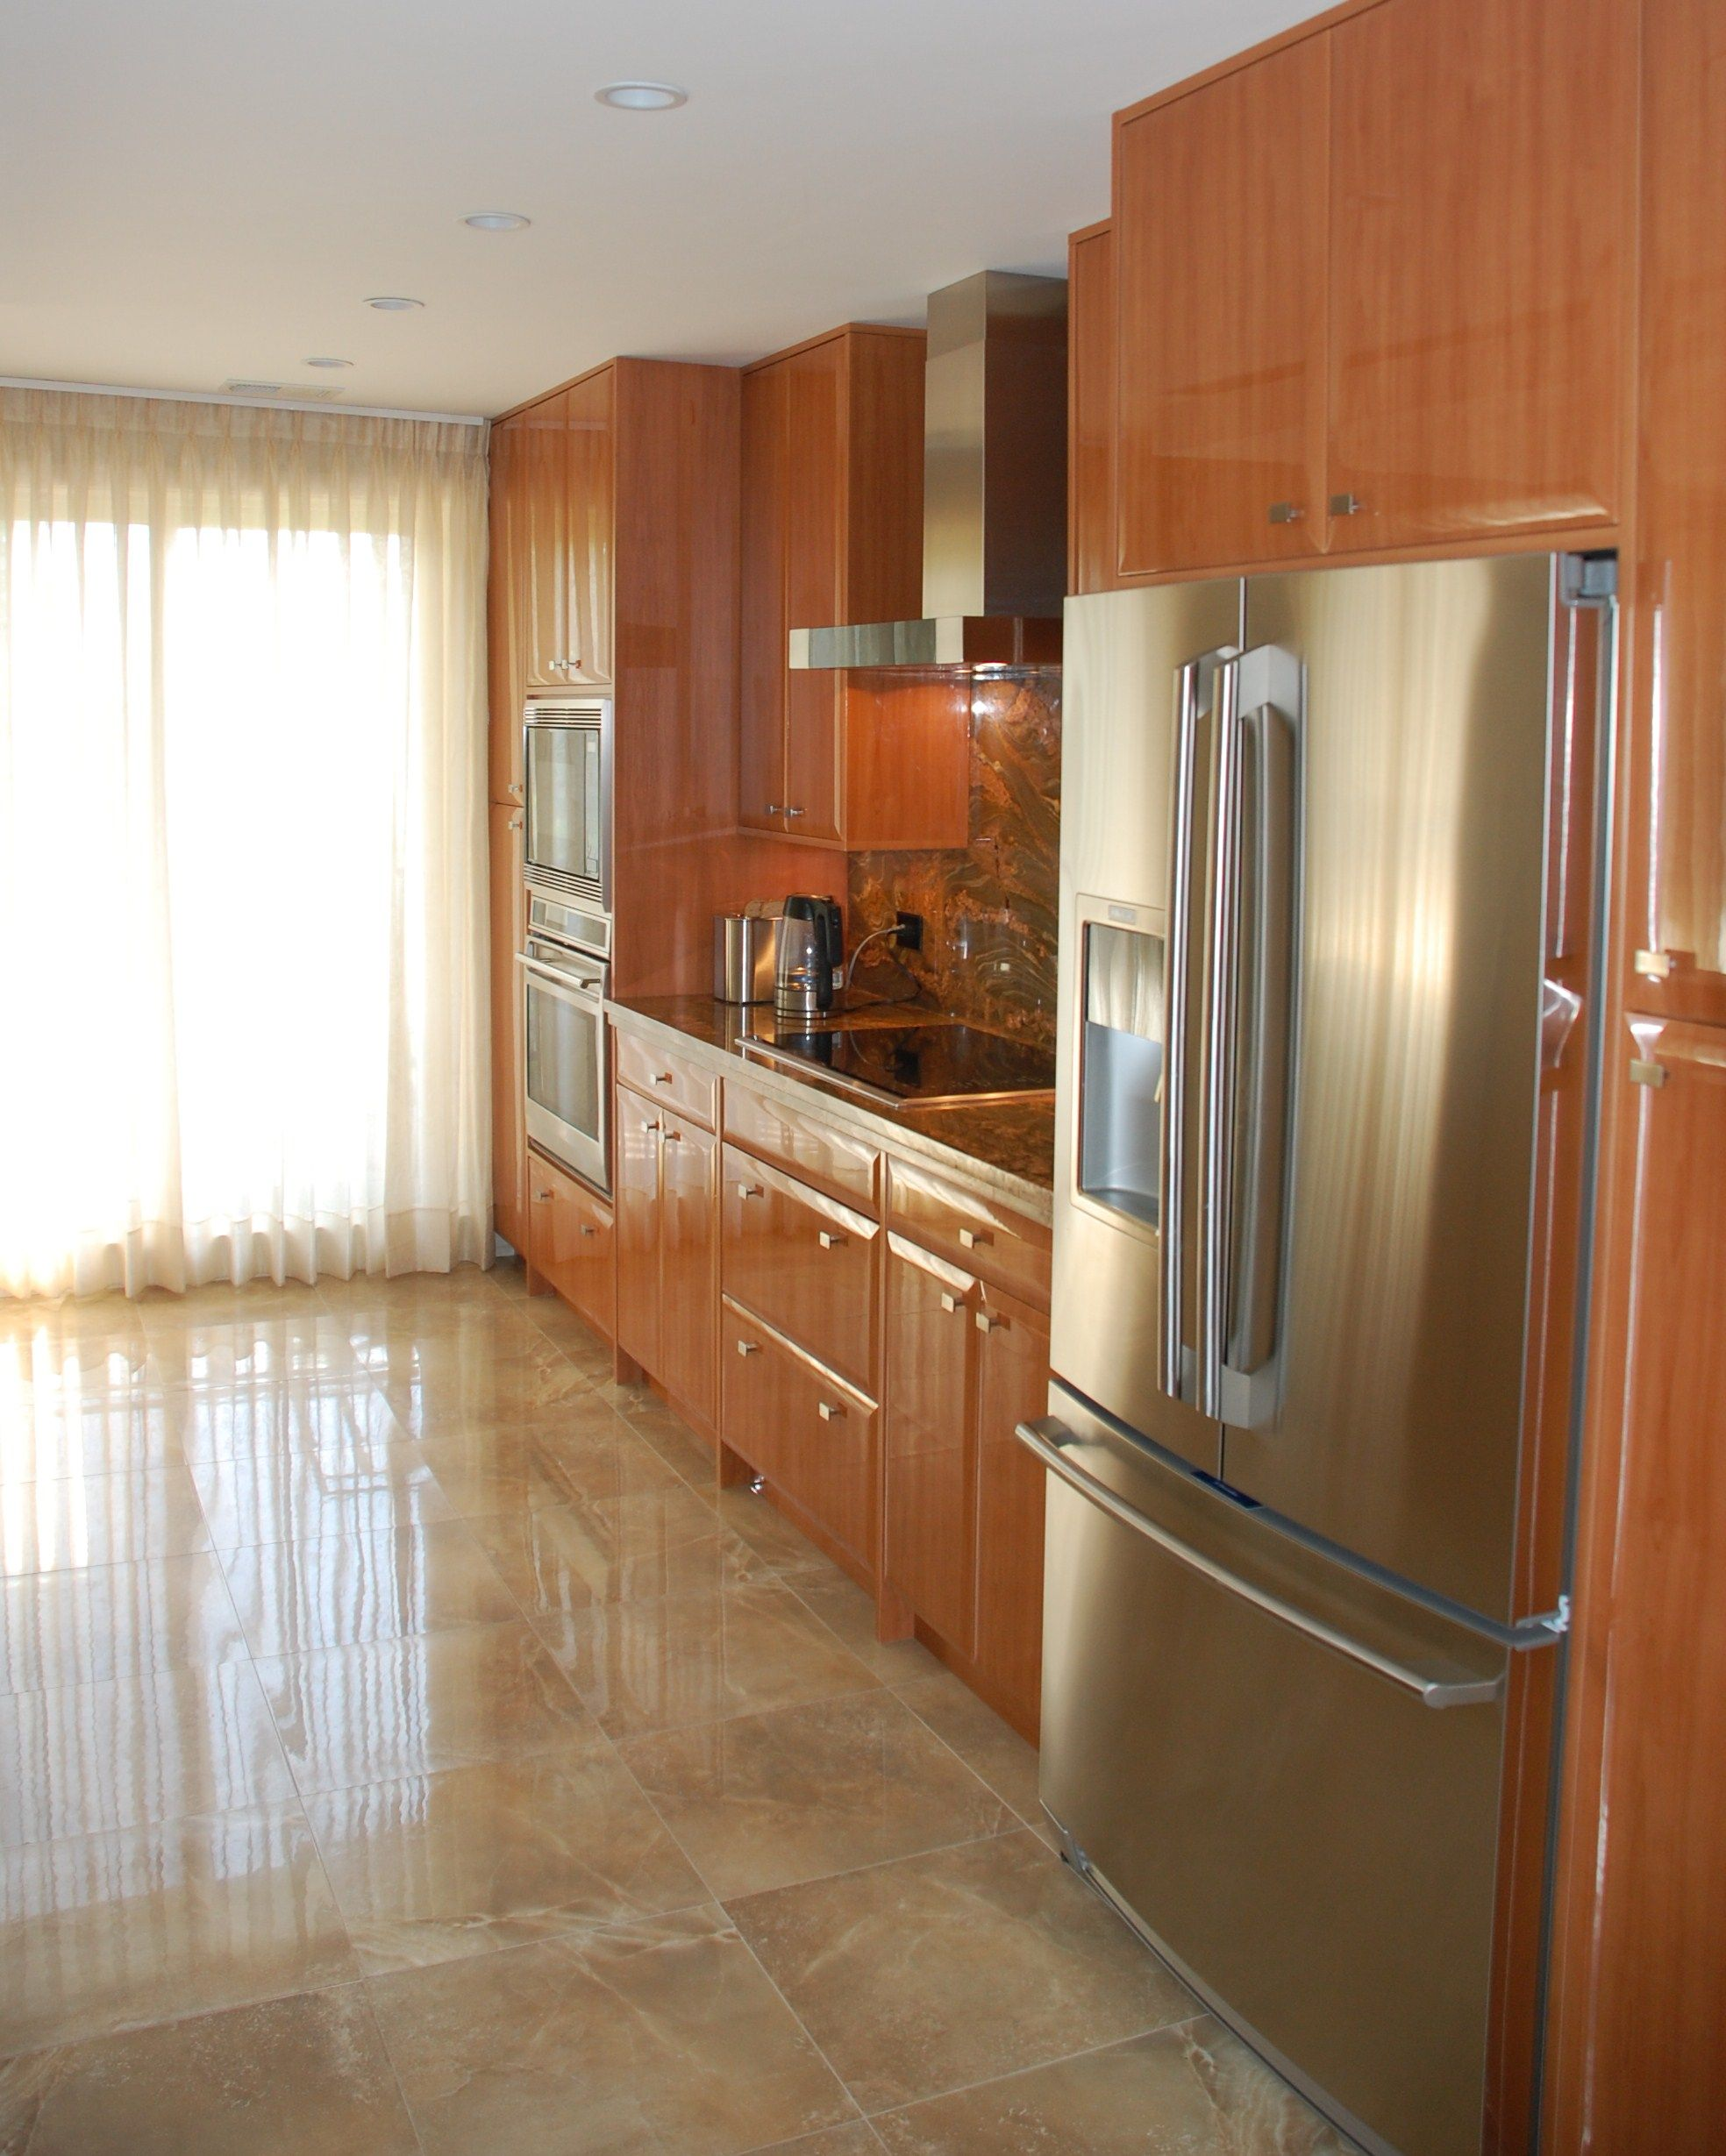 High gloss thermofoil, kitchen by Adagio cabinets 847-480-6300